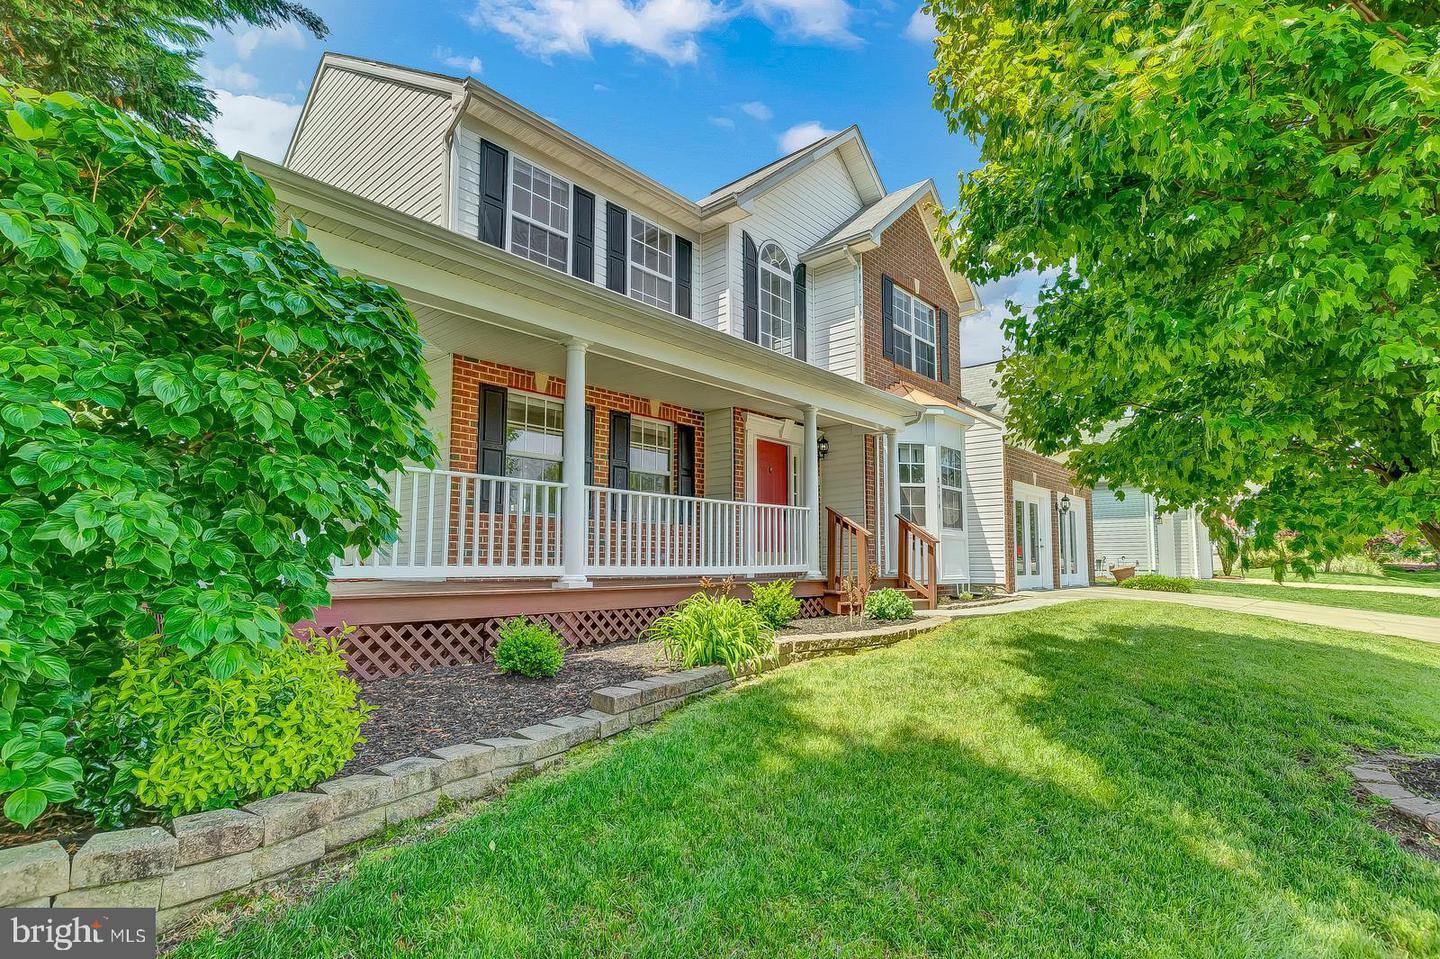 Single Family for Sale at 8210 Bayview Hills Dr Chesapeake Beach, Maryland 20732 United States